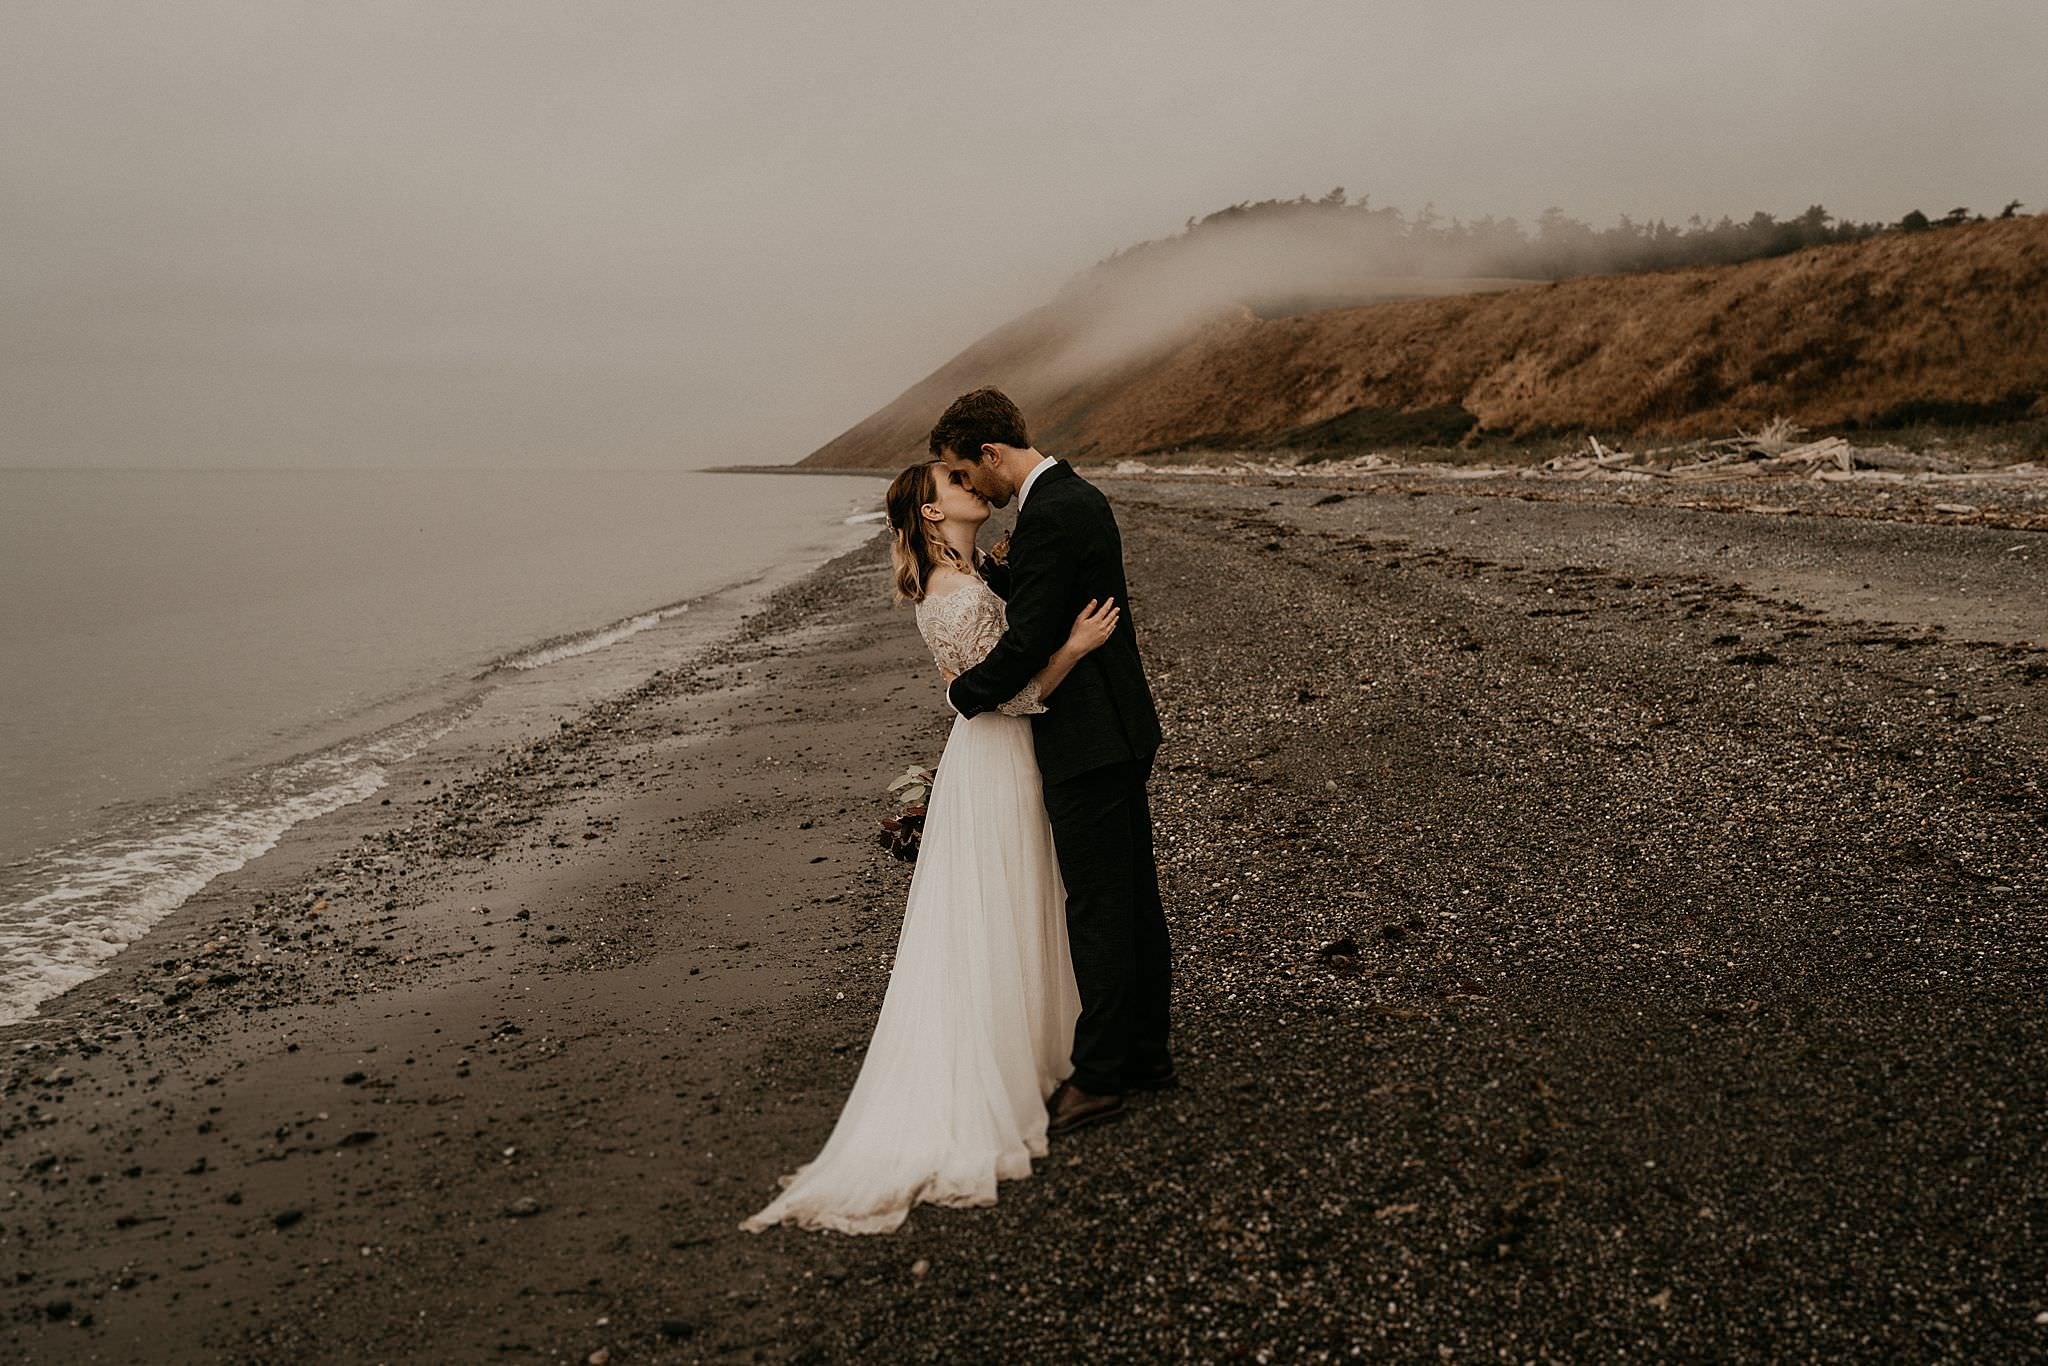 Beach boho wedding on Washington coast near Whidbey Island and olympic national park